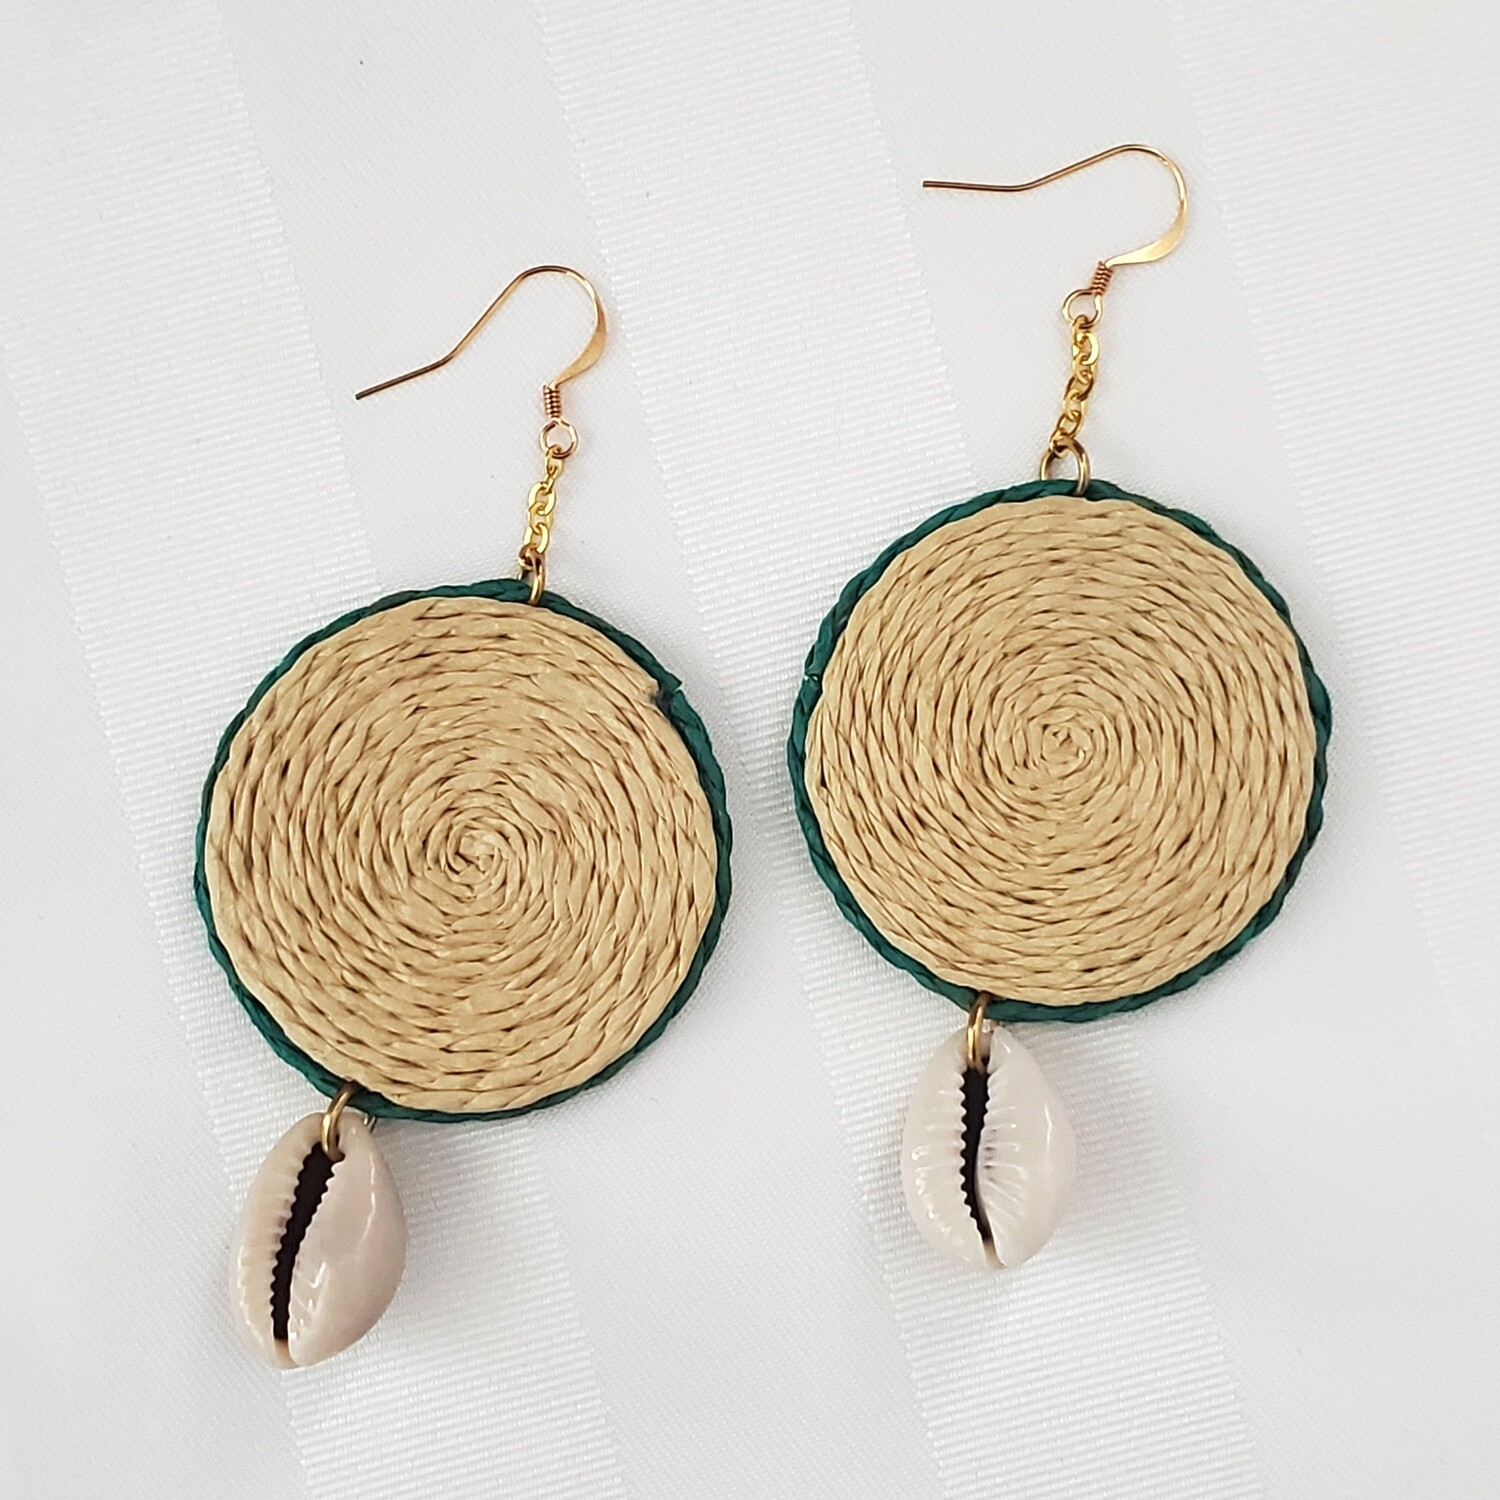 Natural Hand-woven Rattan Wood With Cowrie Shell Earring Hoops